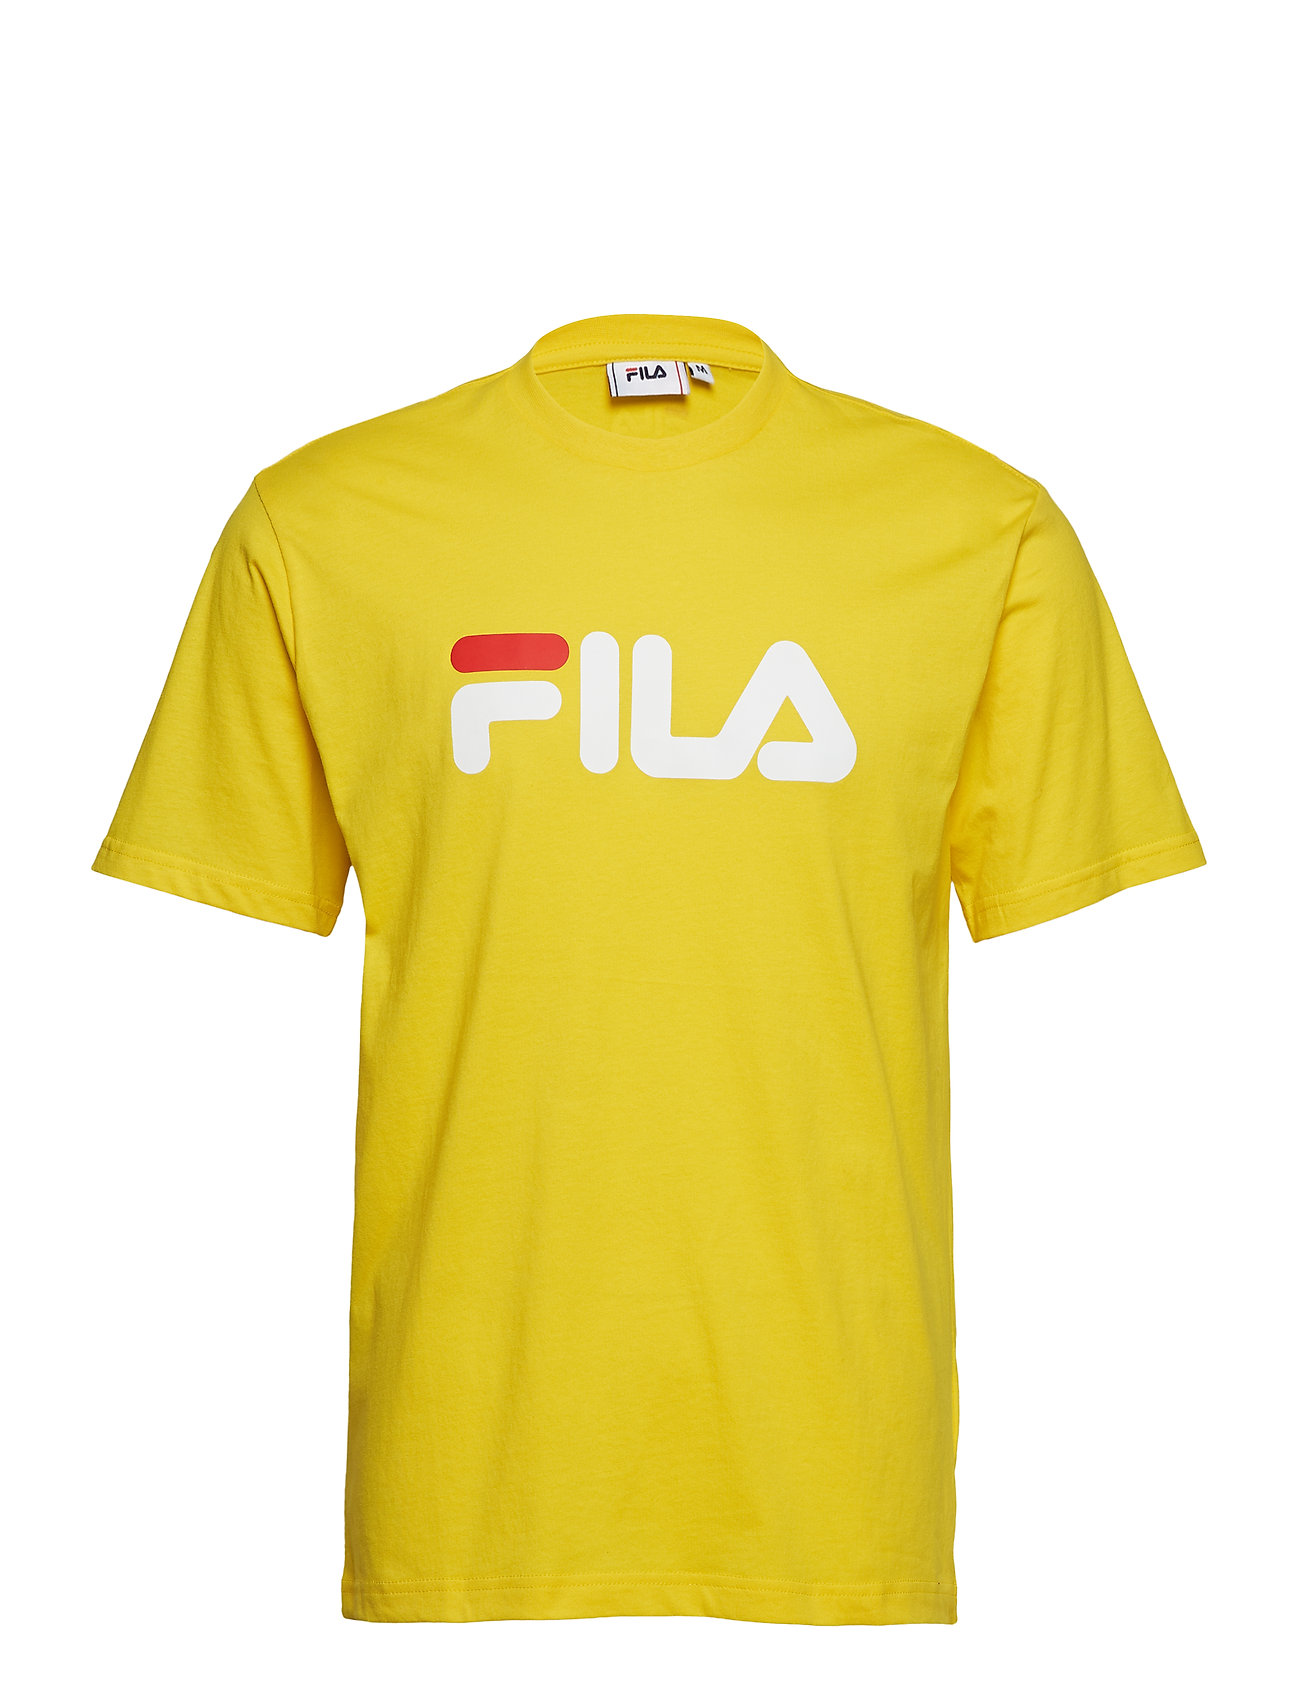 FILA UNISEX CLASSIC PURE ss tee - EMPIRE YELLOW